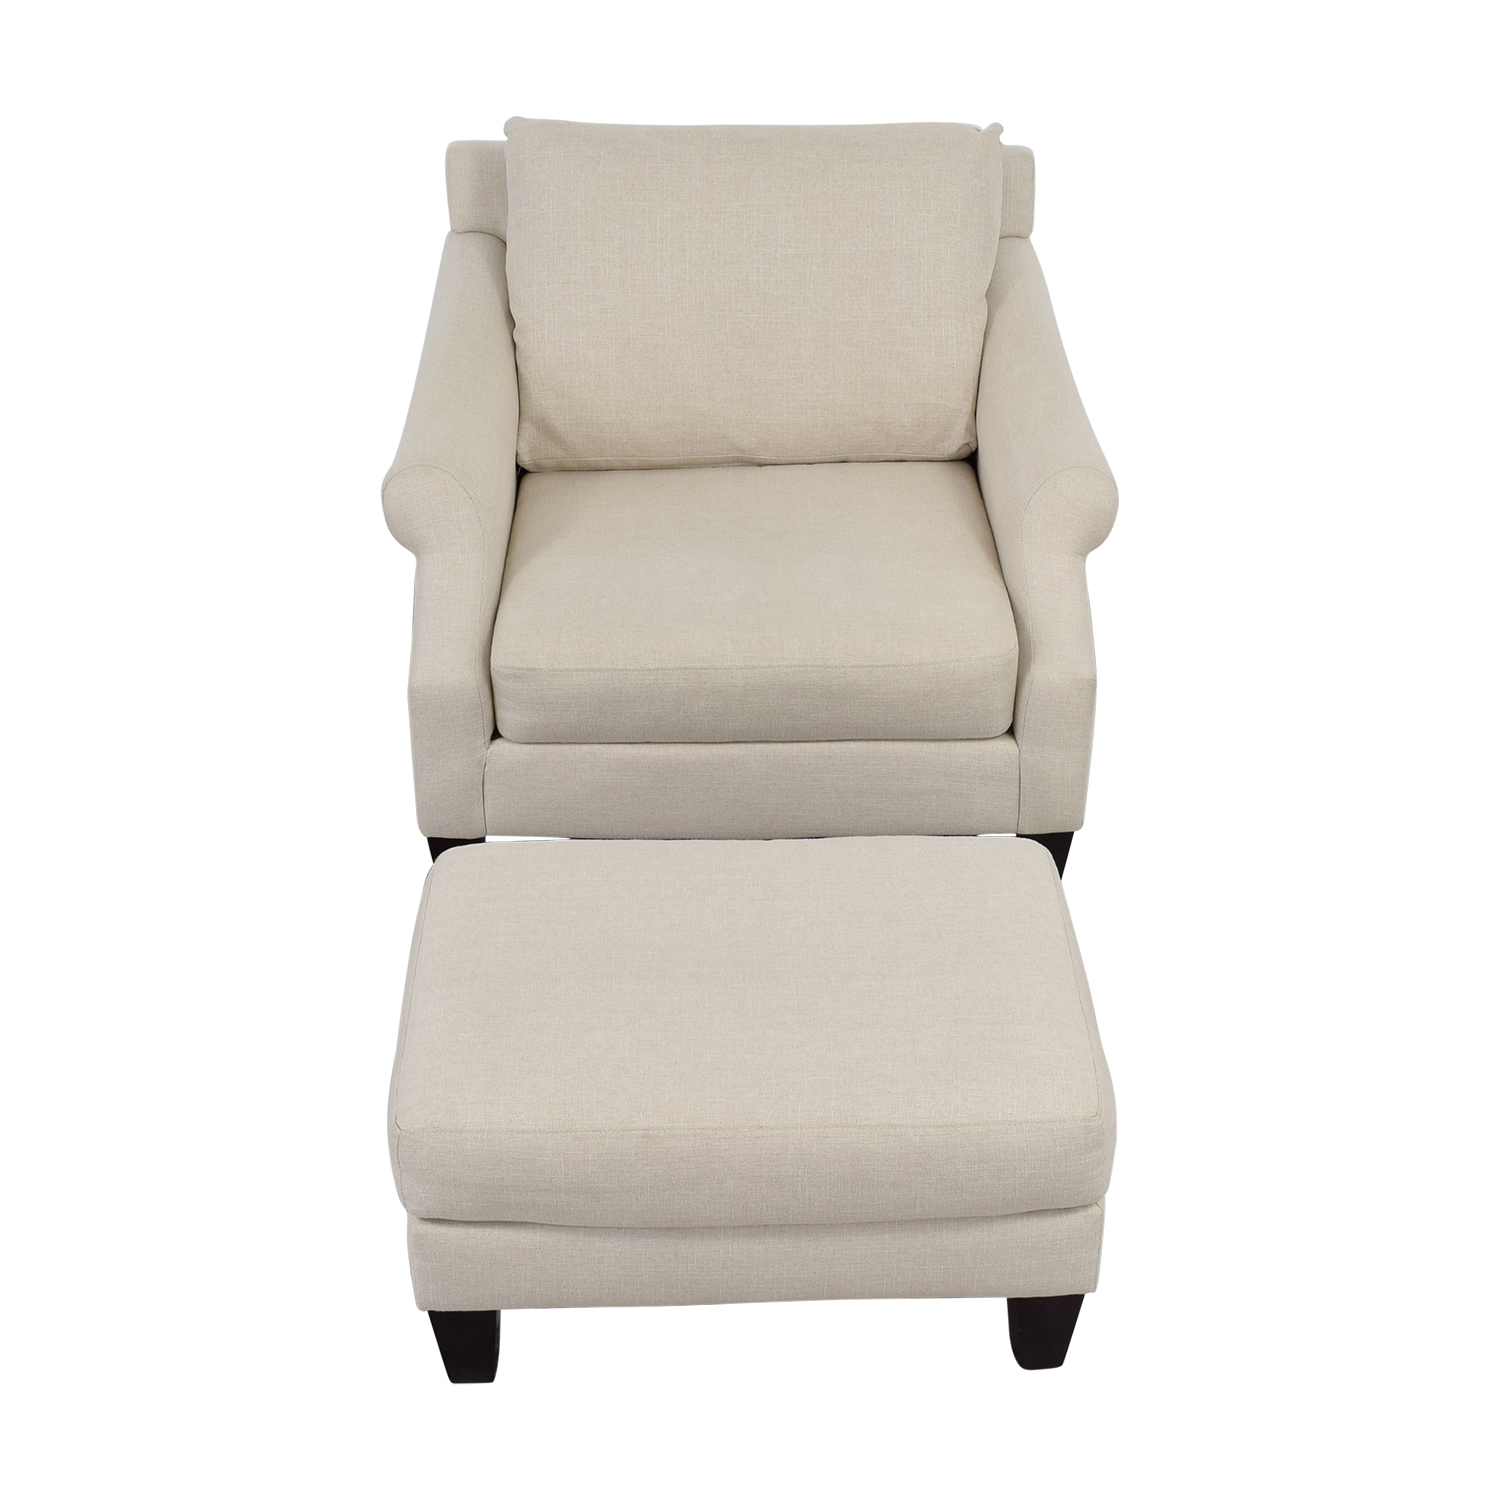 Raymour And Flanigan Chairs: Raymour & Flanigan Raymour & Flanigan Beige Love